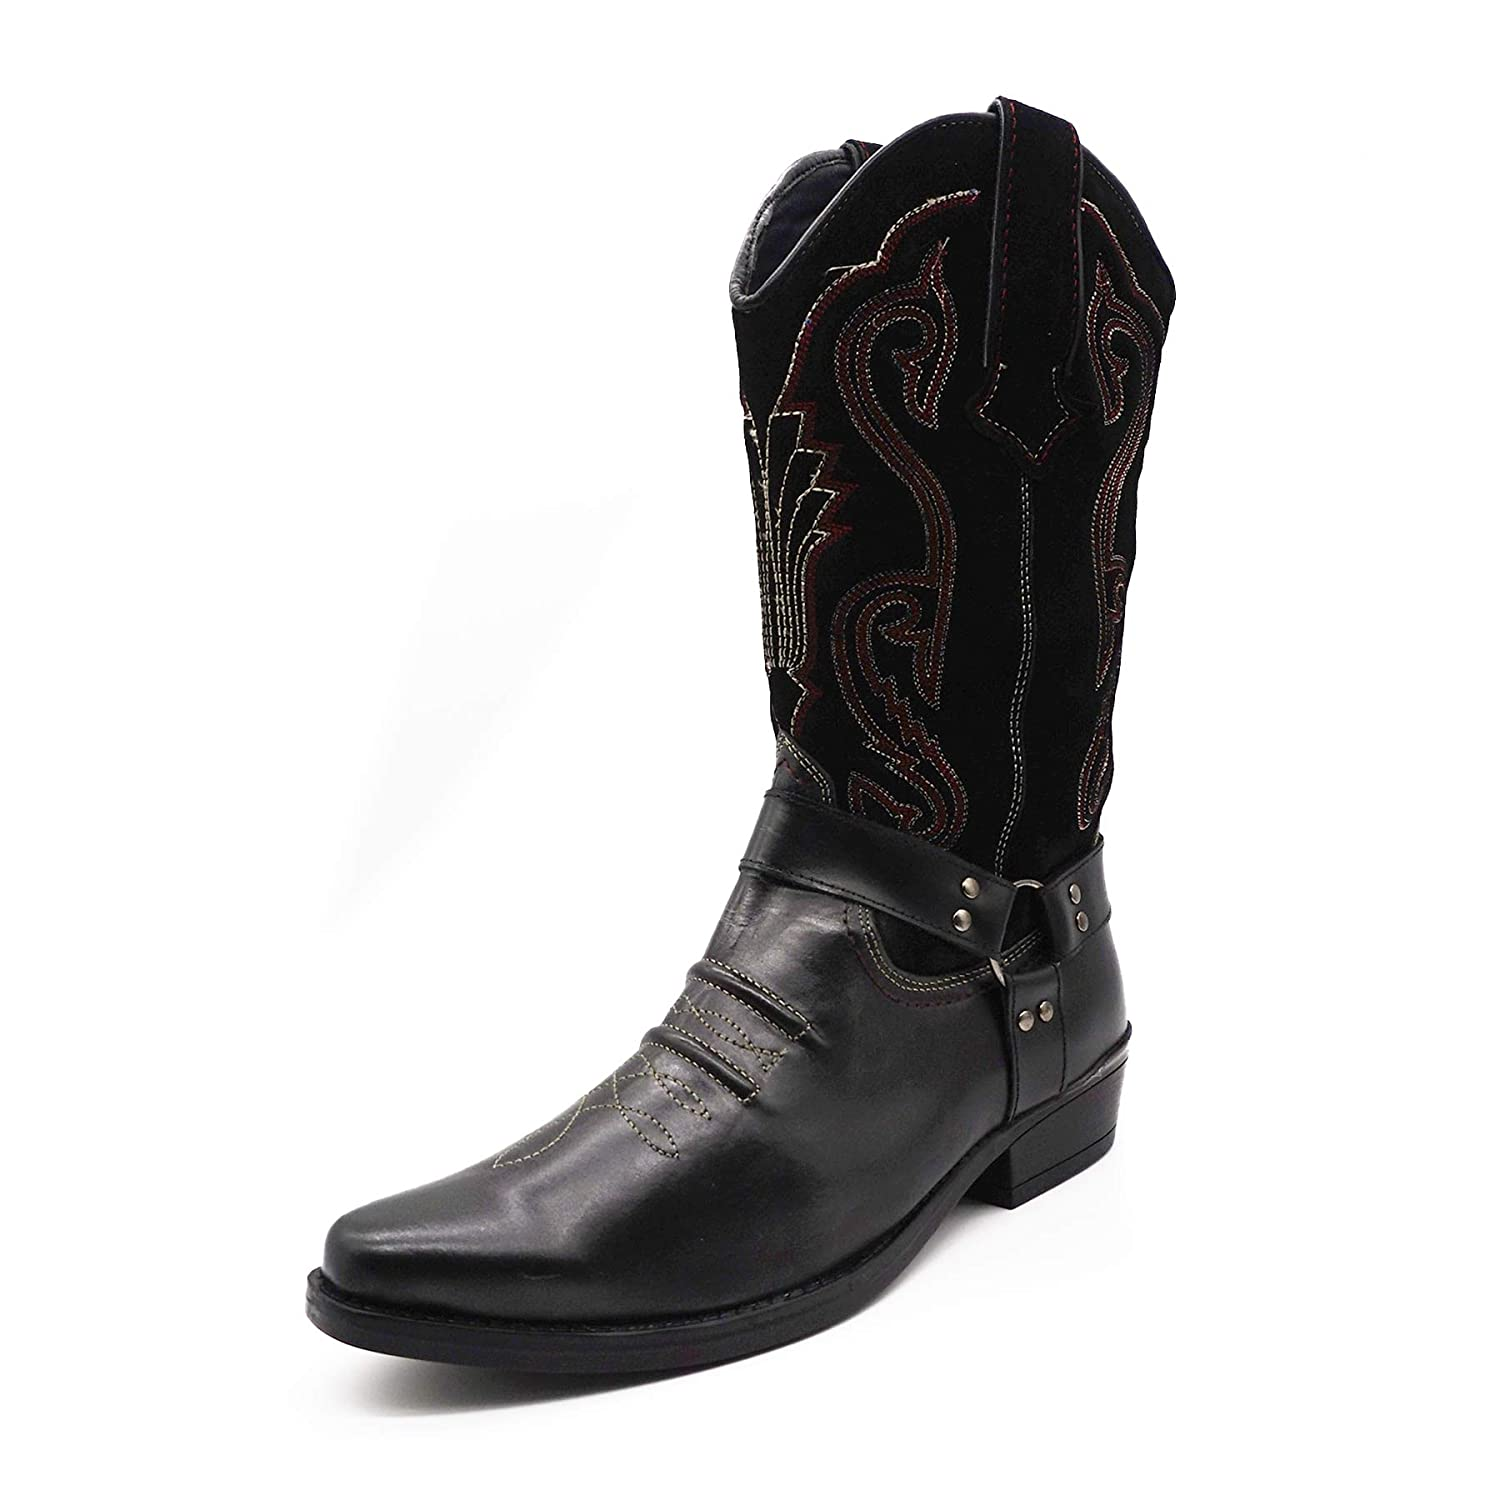 TALLA 40 EU. Mens Leather Cowboy Pull On Western Harness Cuban Heel Smart Ankle Boots UK 6-13